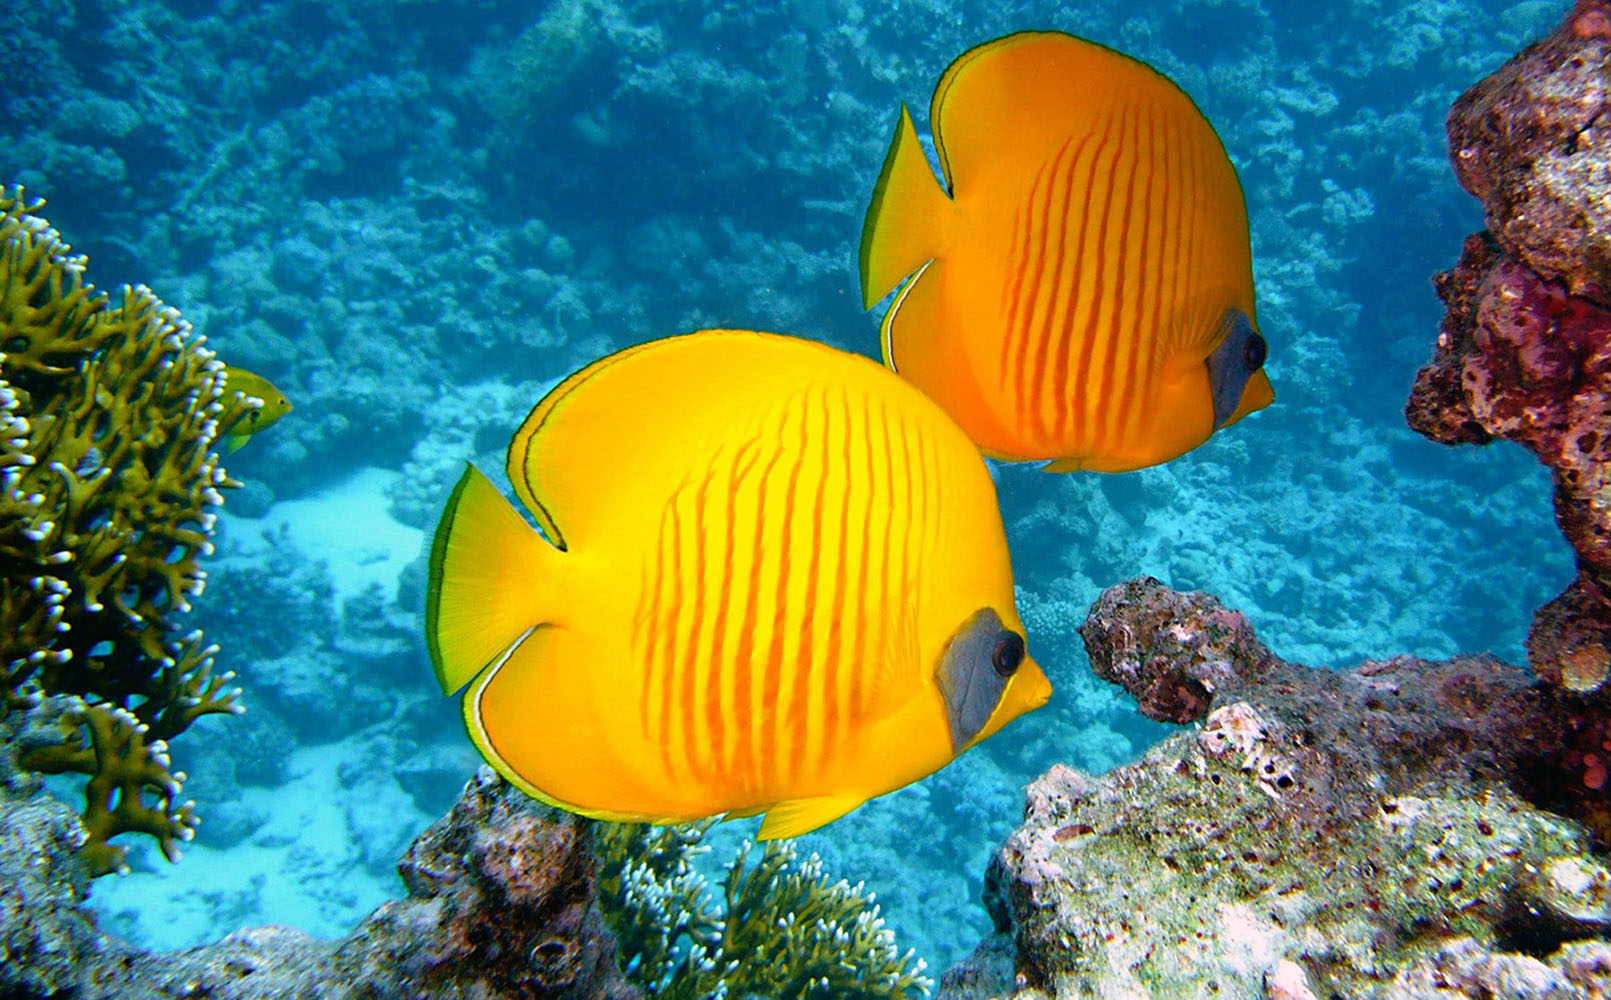 Two yellow fish in the ocean